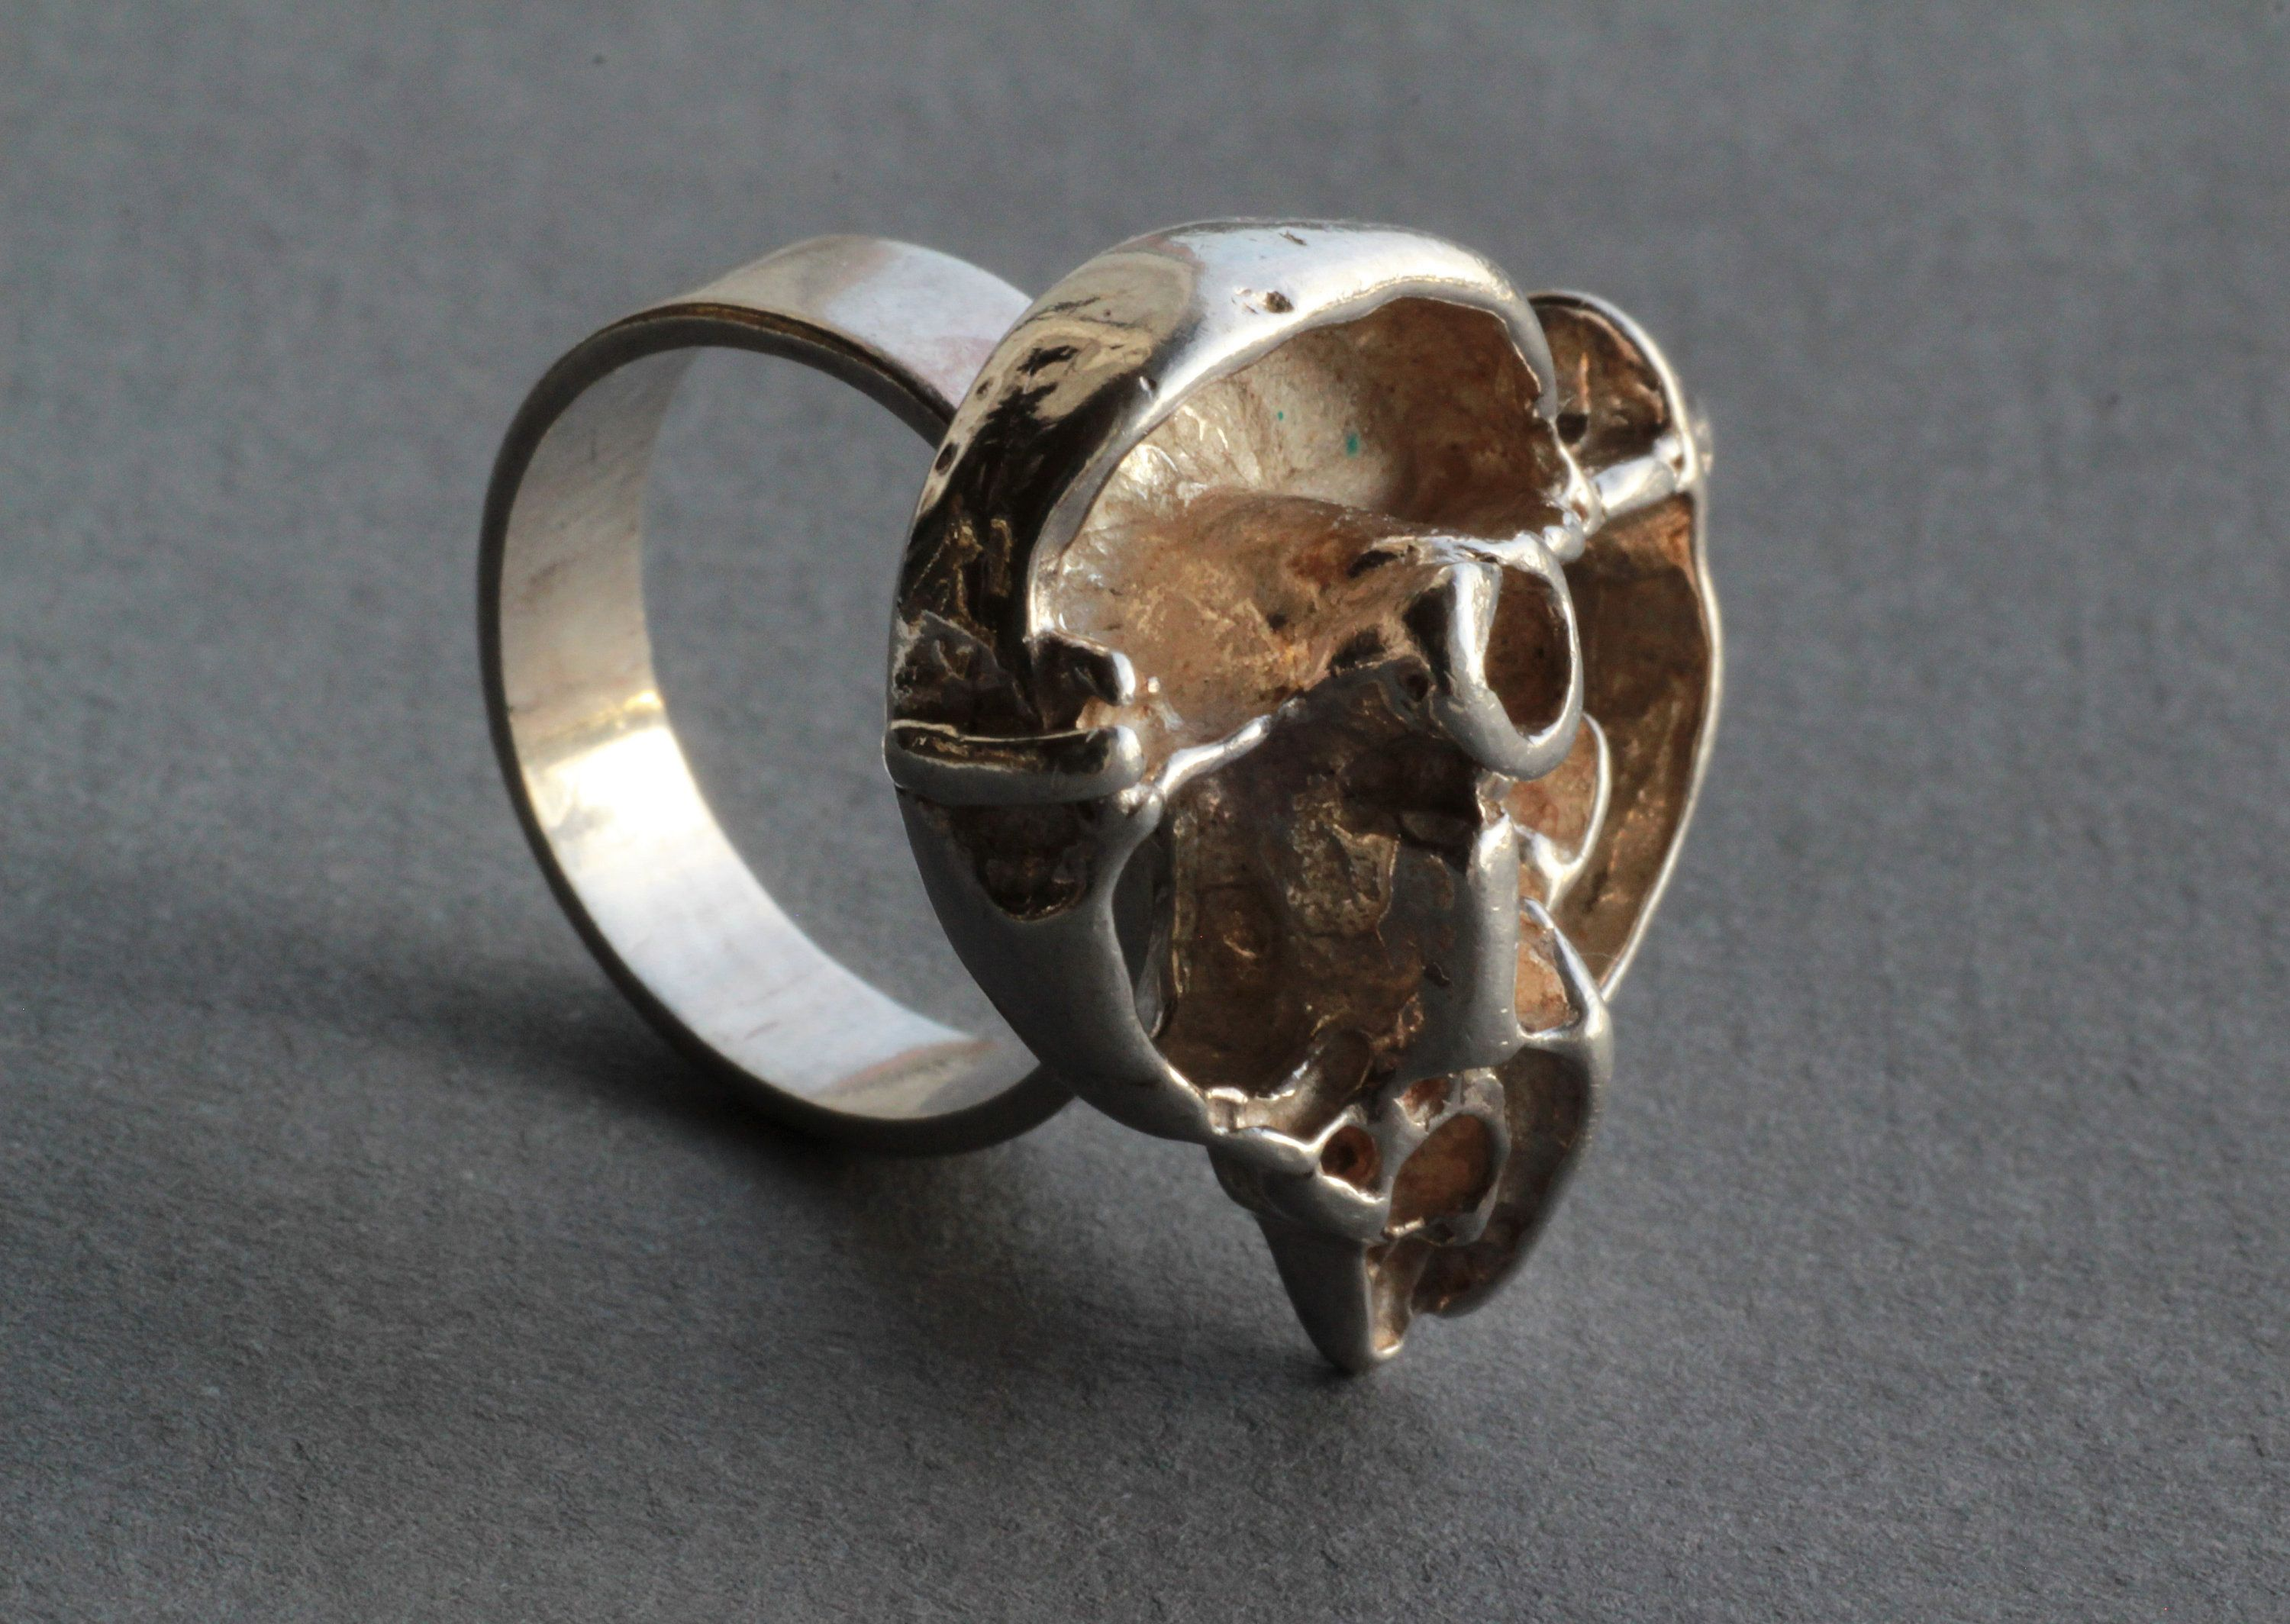 Very pretty brutalist ring of silver brass with abstract drawings of small rounds.